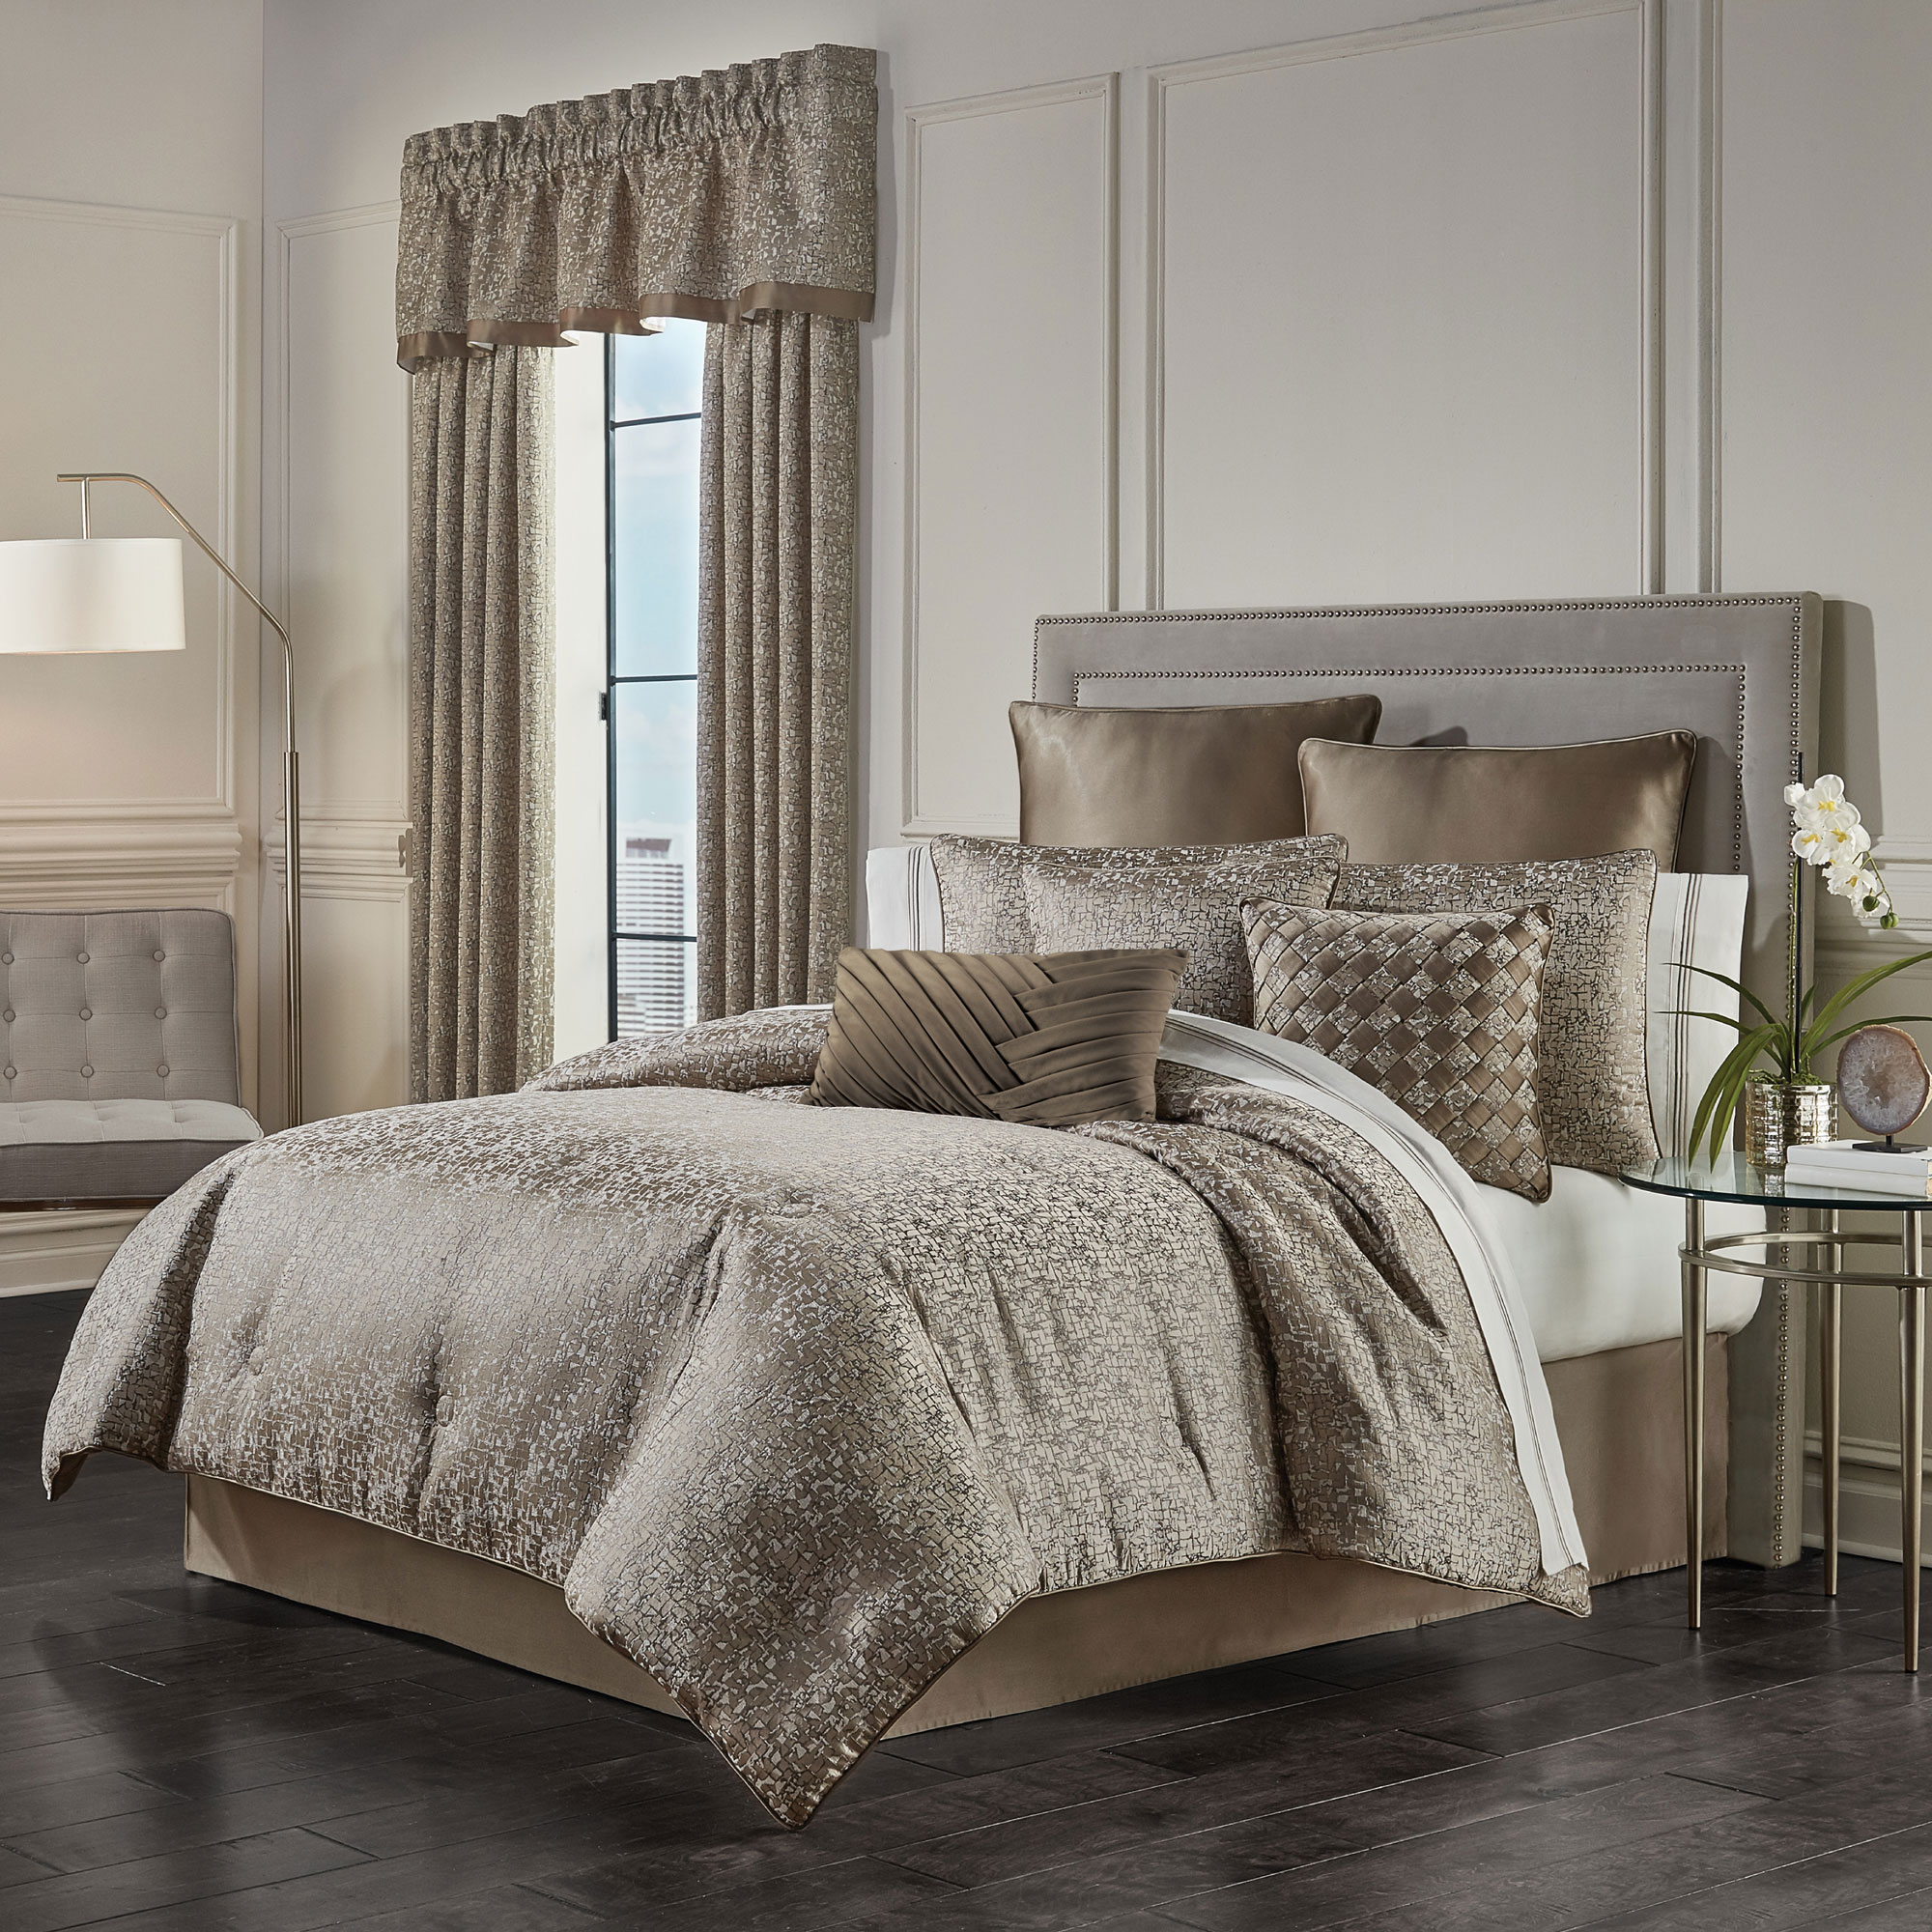 Cracked Ice Taupe Cal King 4 Piece Comforter Set